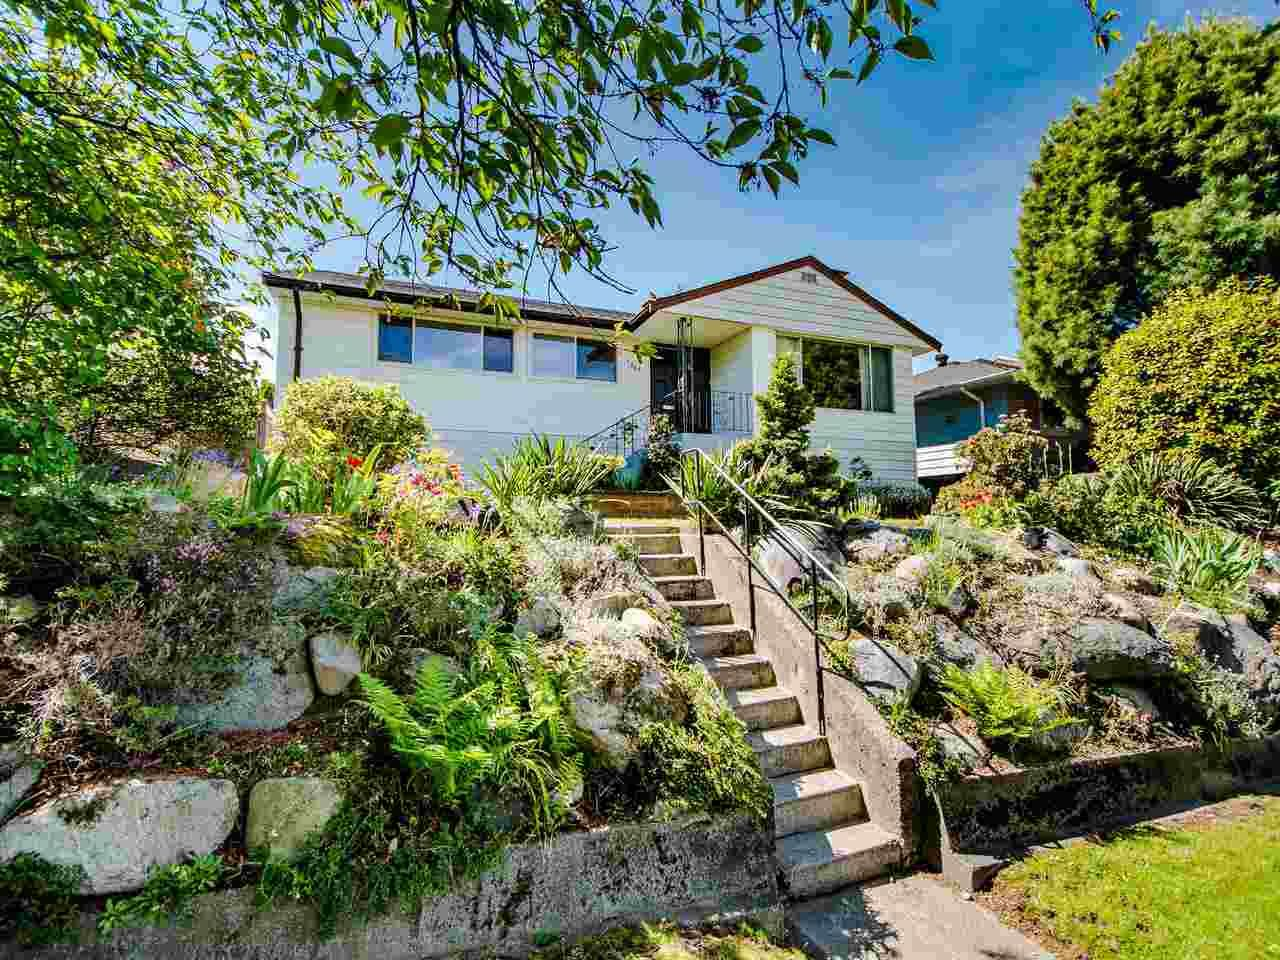 Main Photo: 545 GARFIELD Street in New Westminster: The Heights NW House for sale : MLS®# R2453912